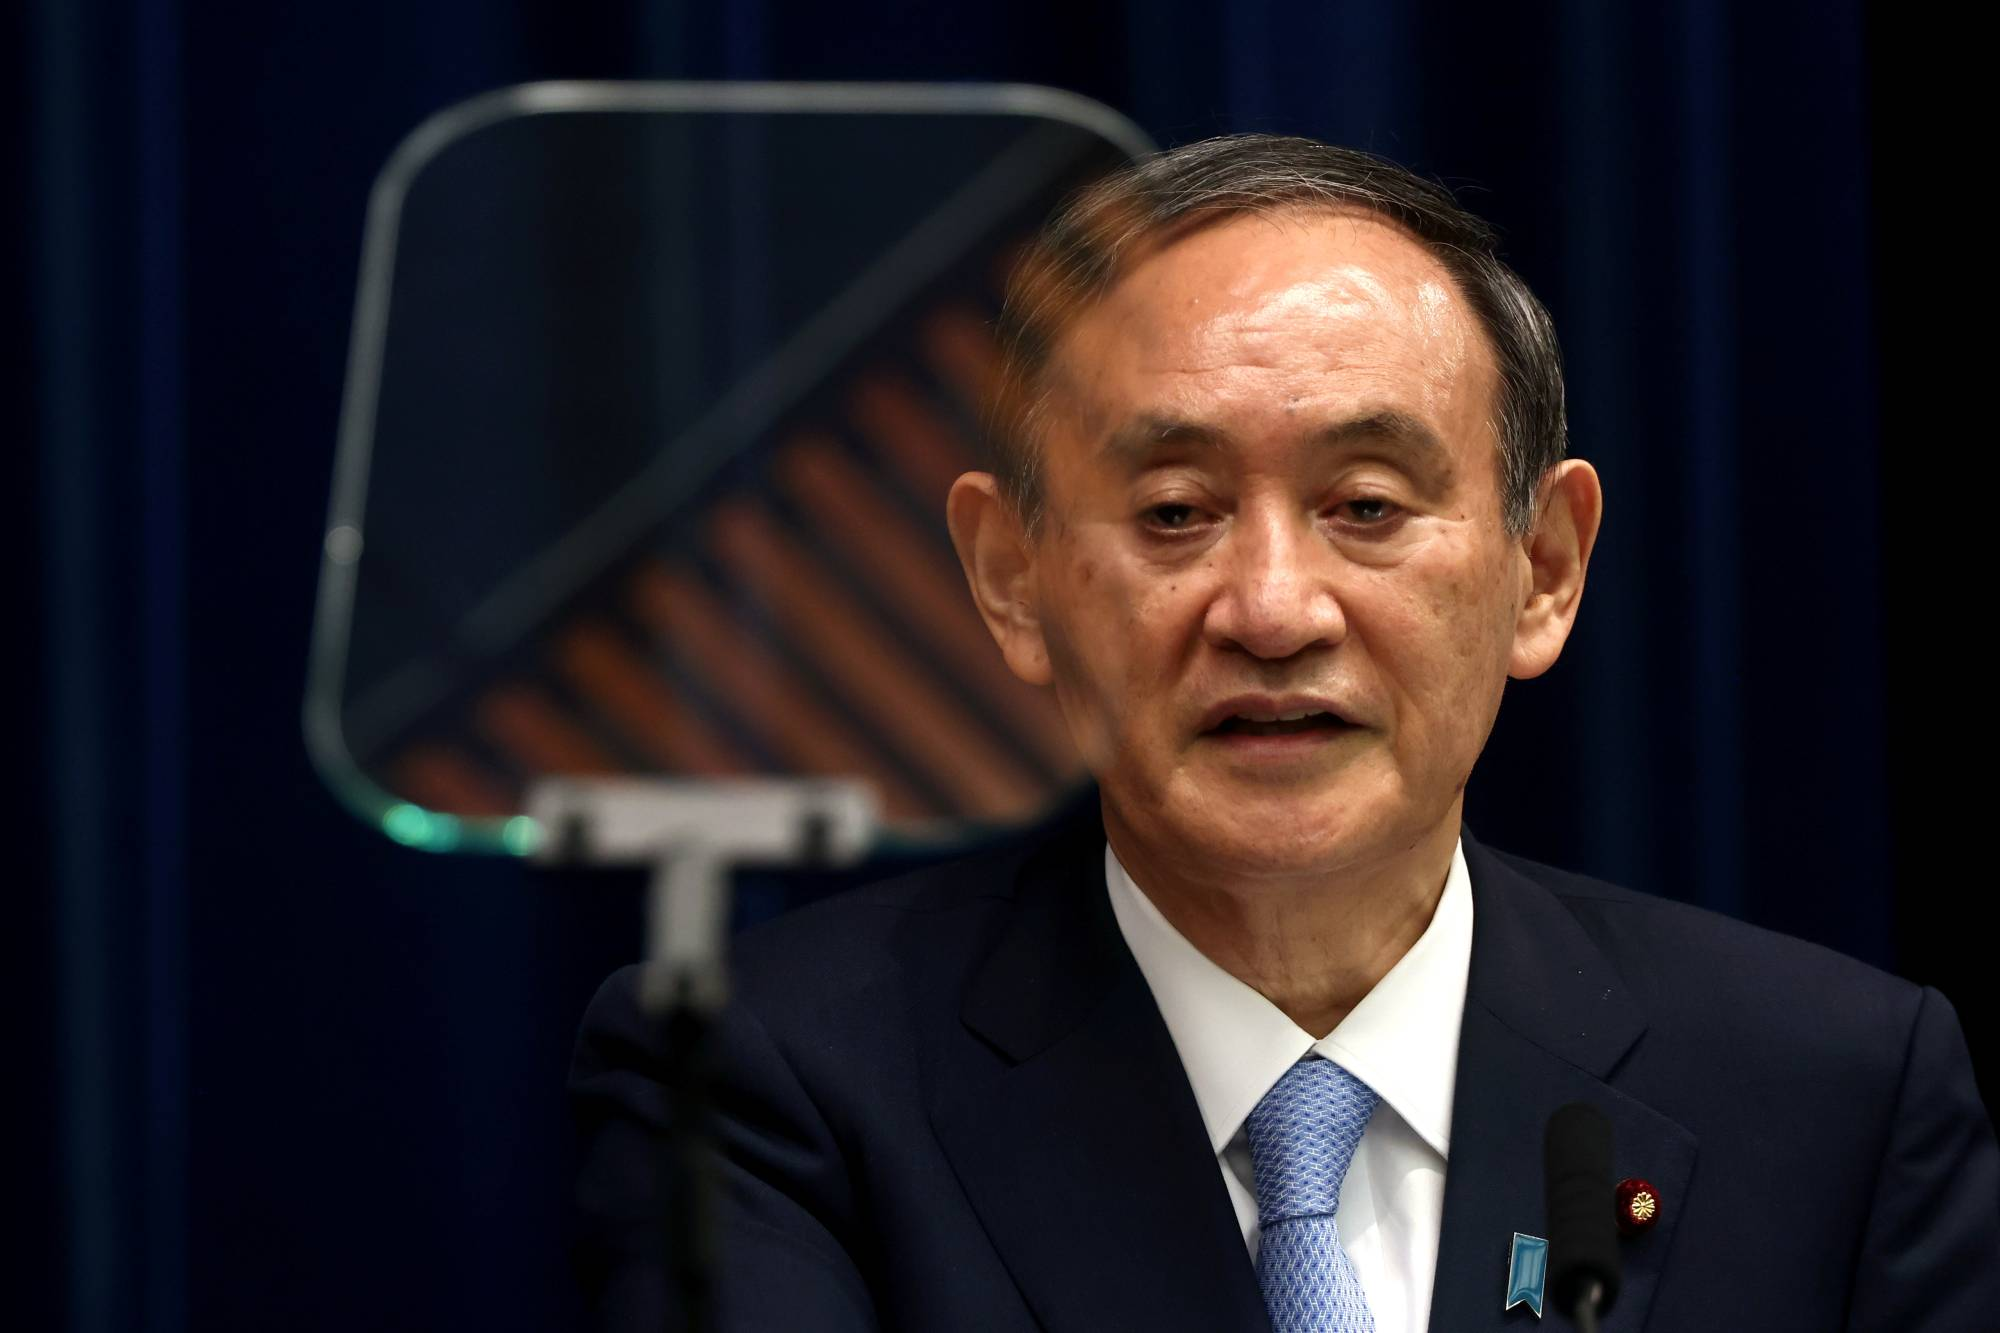 With the coronavirus running amok, public attention has focused on the government's measures against the pandemic, which have occupied much of Prime Minister Yoshihide Suga's time and energy. | POOL / VIA REUTERS